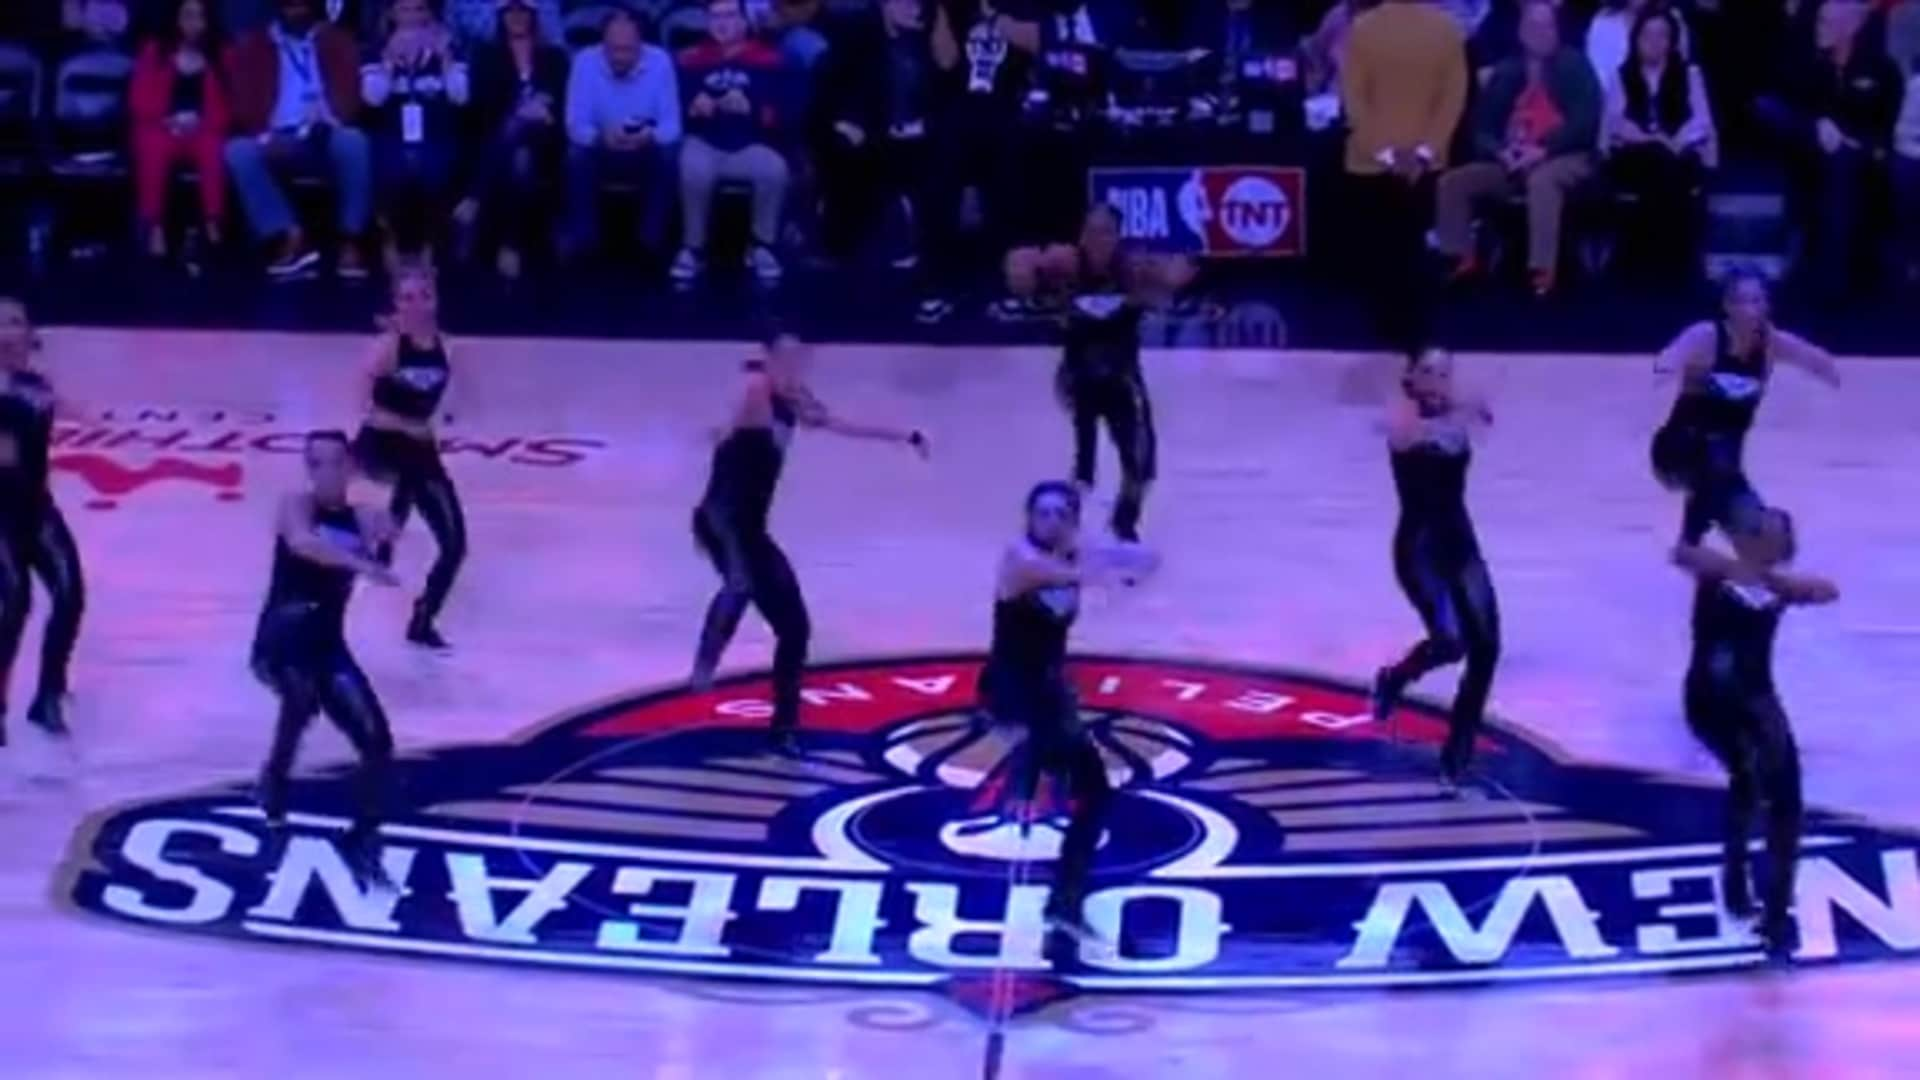 Entertainment: Pelicans Dance Team 3rd quarter performance - October 31 vs. Denver Nuggets